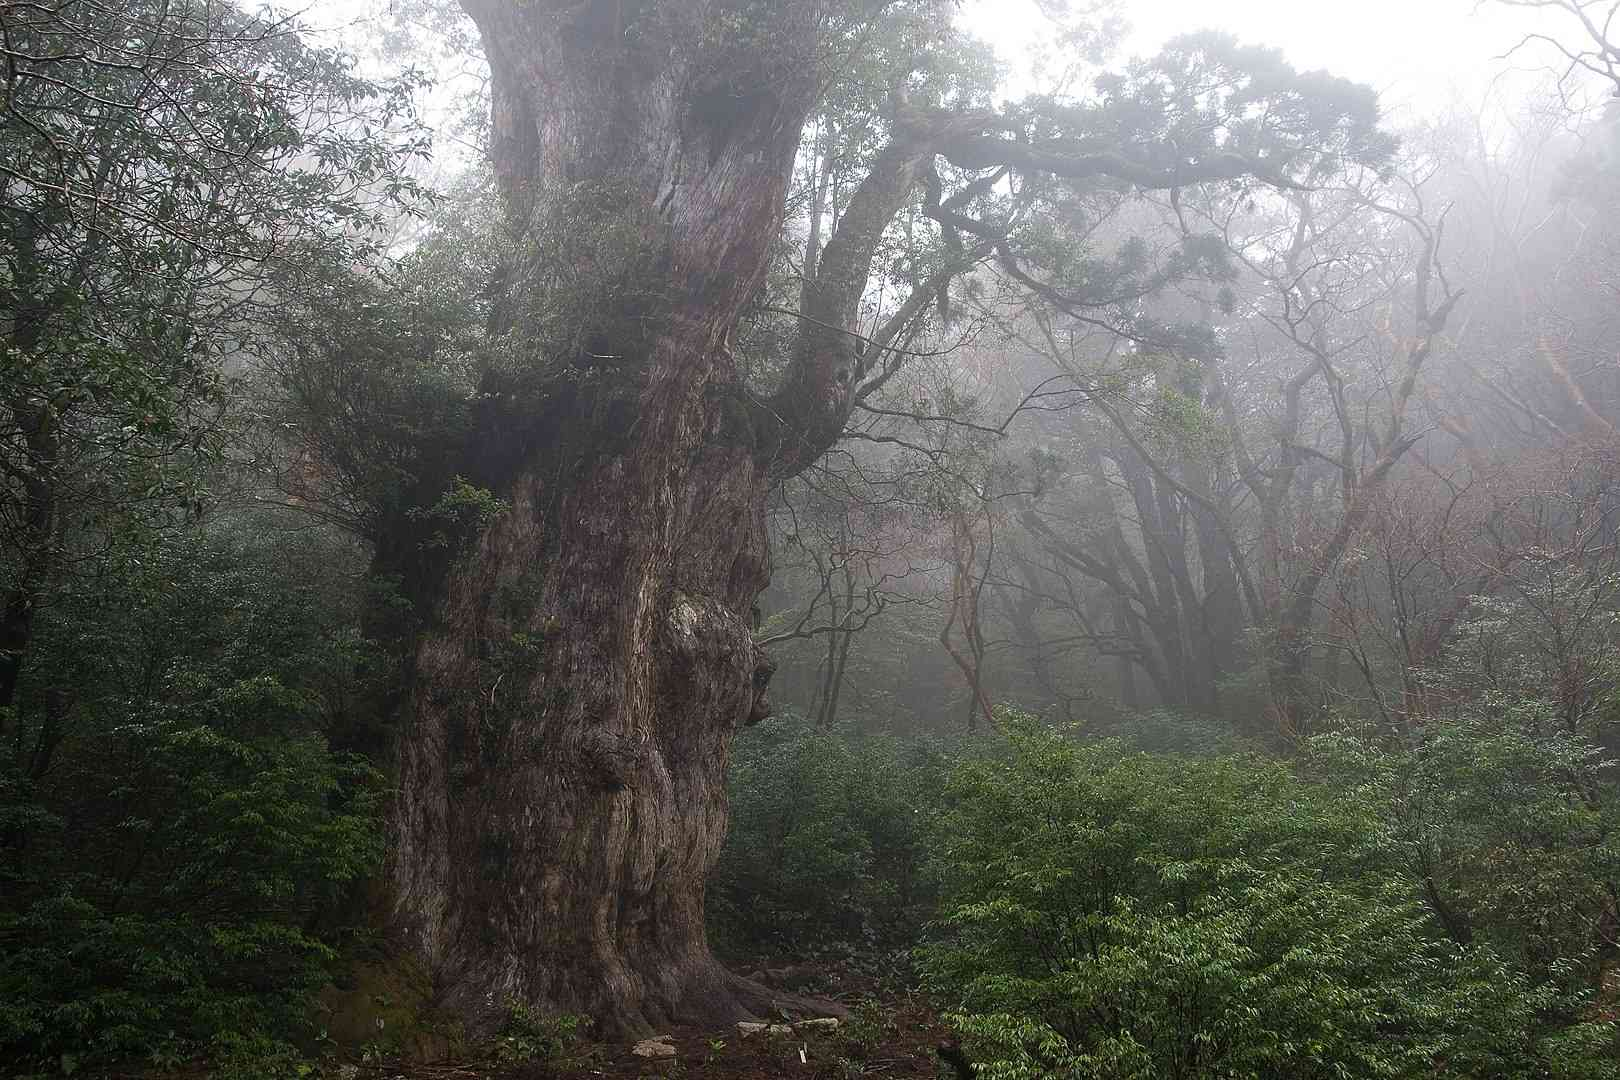 A foggy view of the tree Jōmon Sugi in Yakushima, Japan